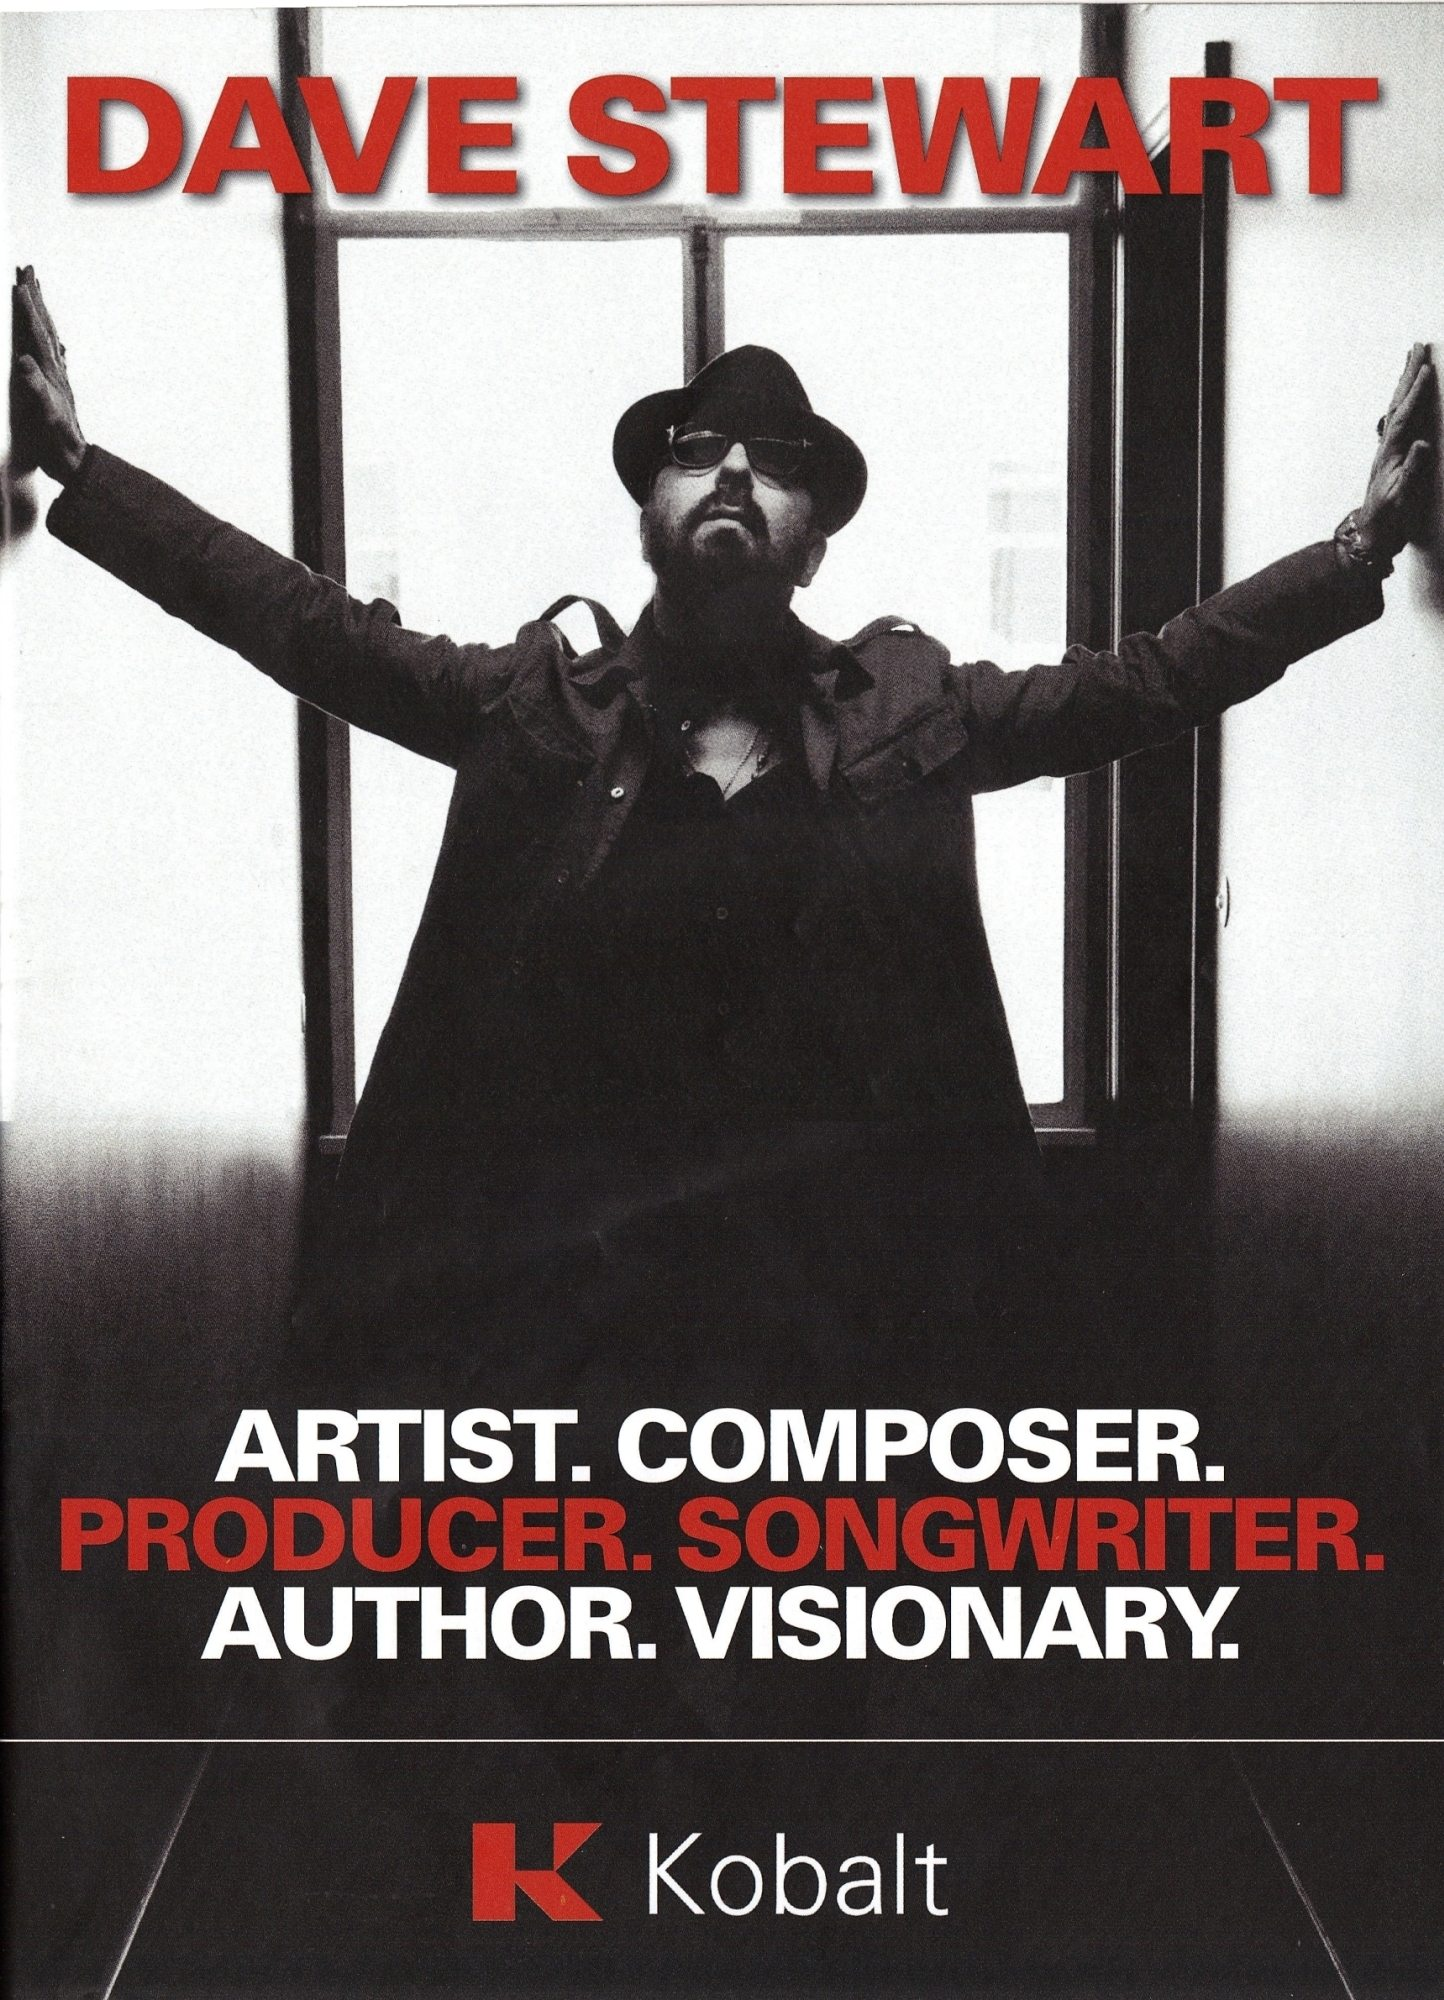 Dave Stewart Music Week Feature: The Ringmaster General And Eurythmics.